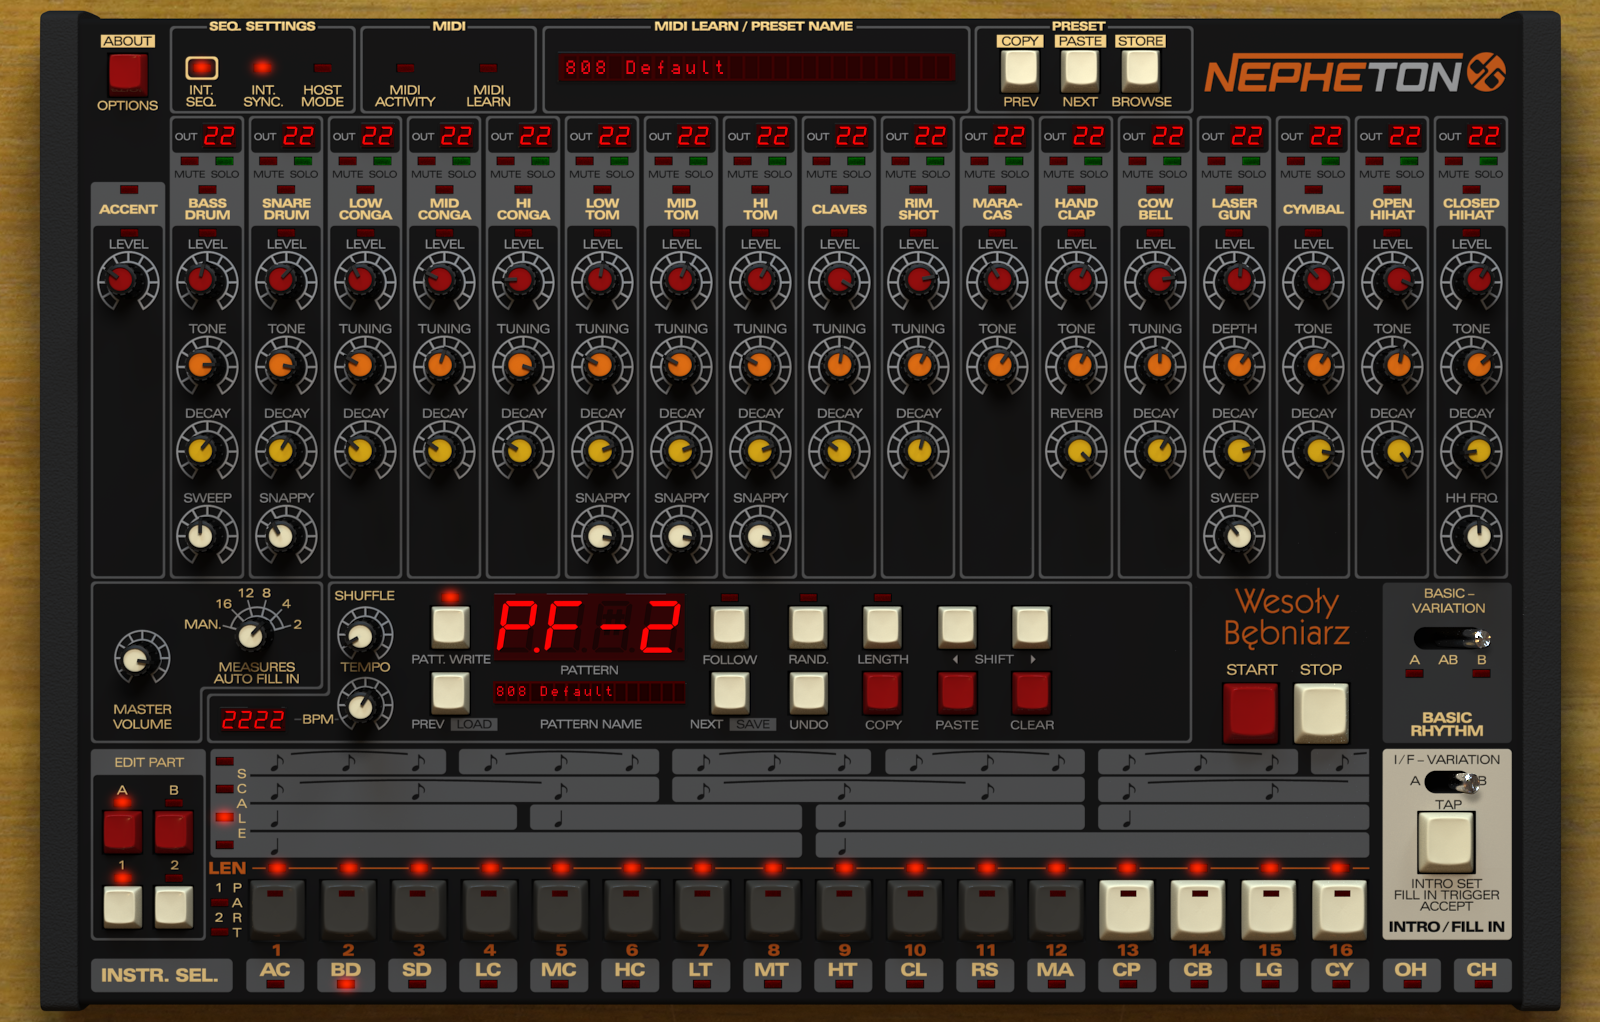 Windows 8 Nepheton full